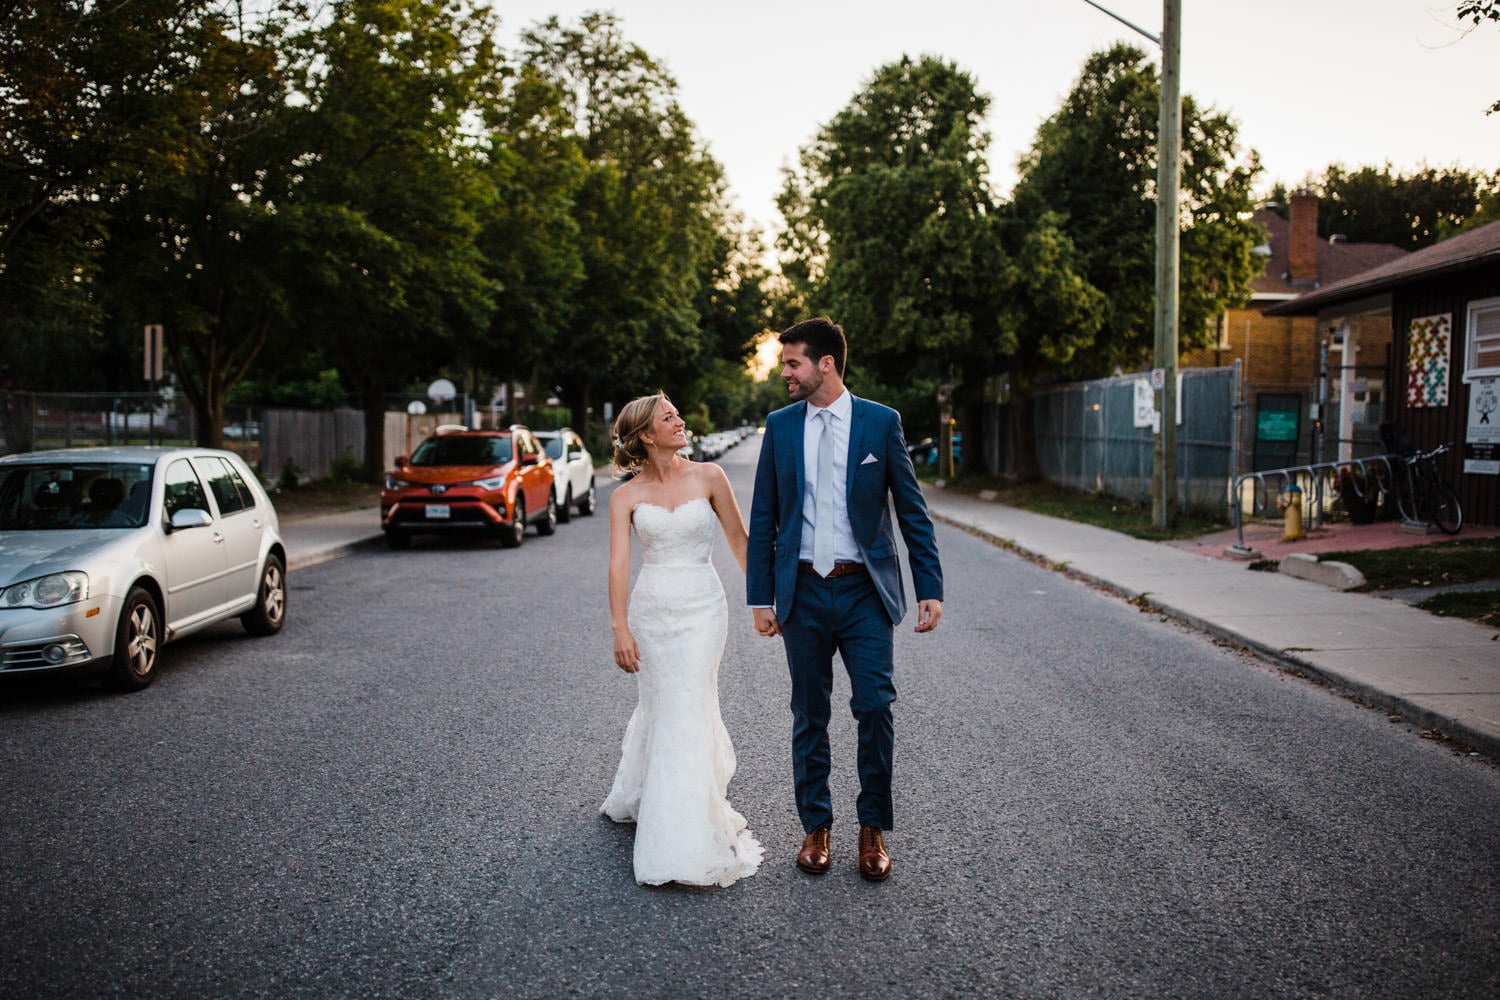 couple walk down street together - glebe community centre wedding